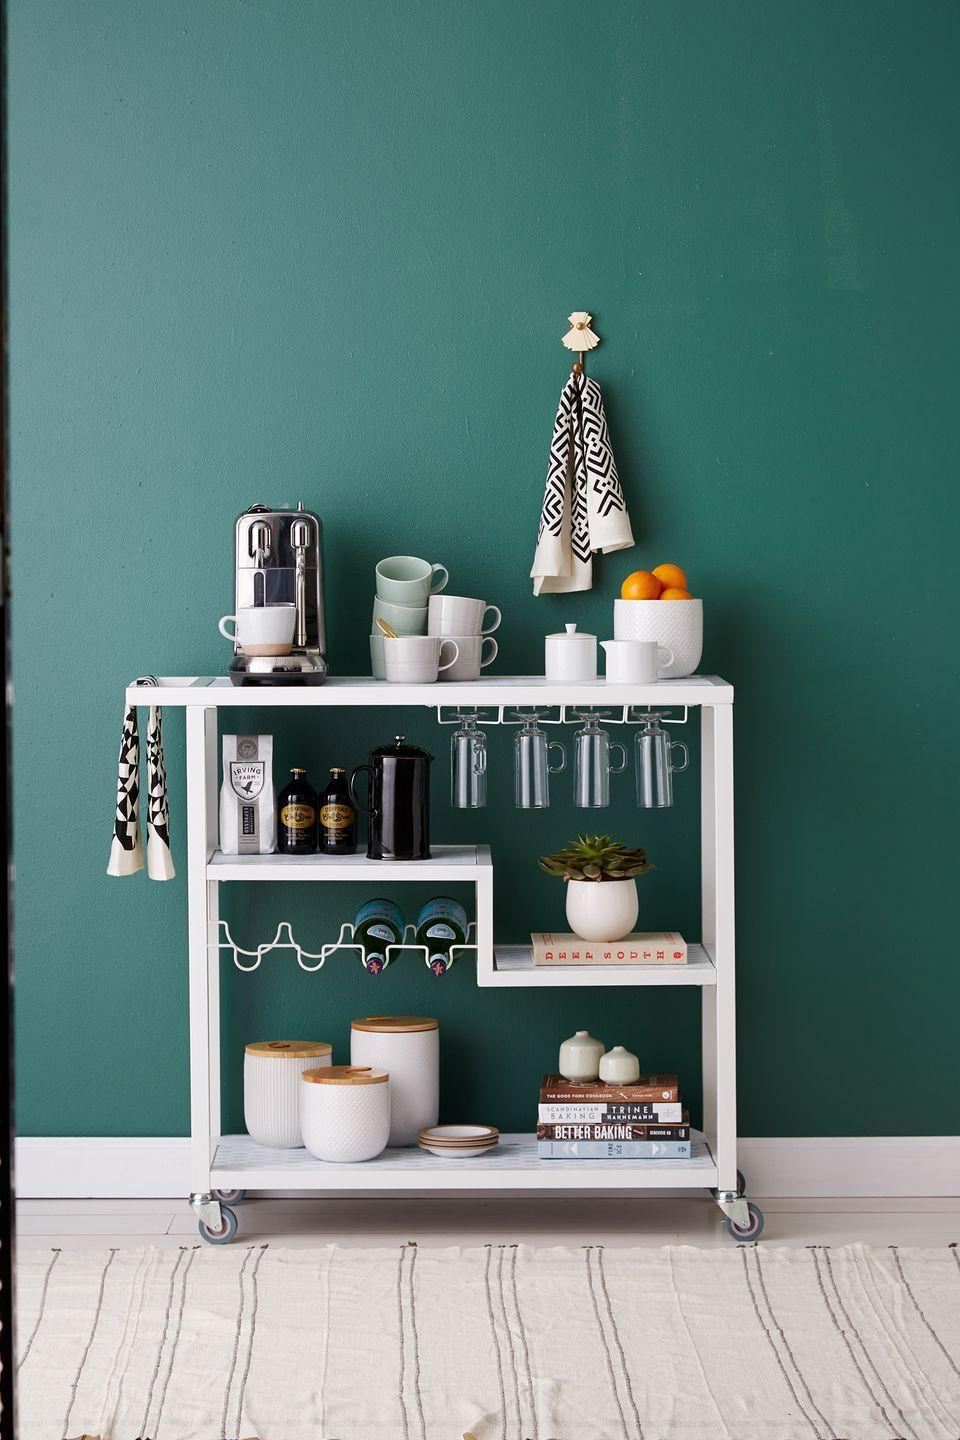 <p>If you're in need of extra space to store your coffee maker and kitchen essentials, a bar cart is a no-fail solution. Add a small succulent and bowl of citrus to create more visual appeal. </p>